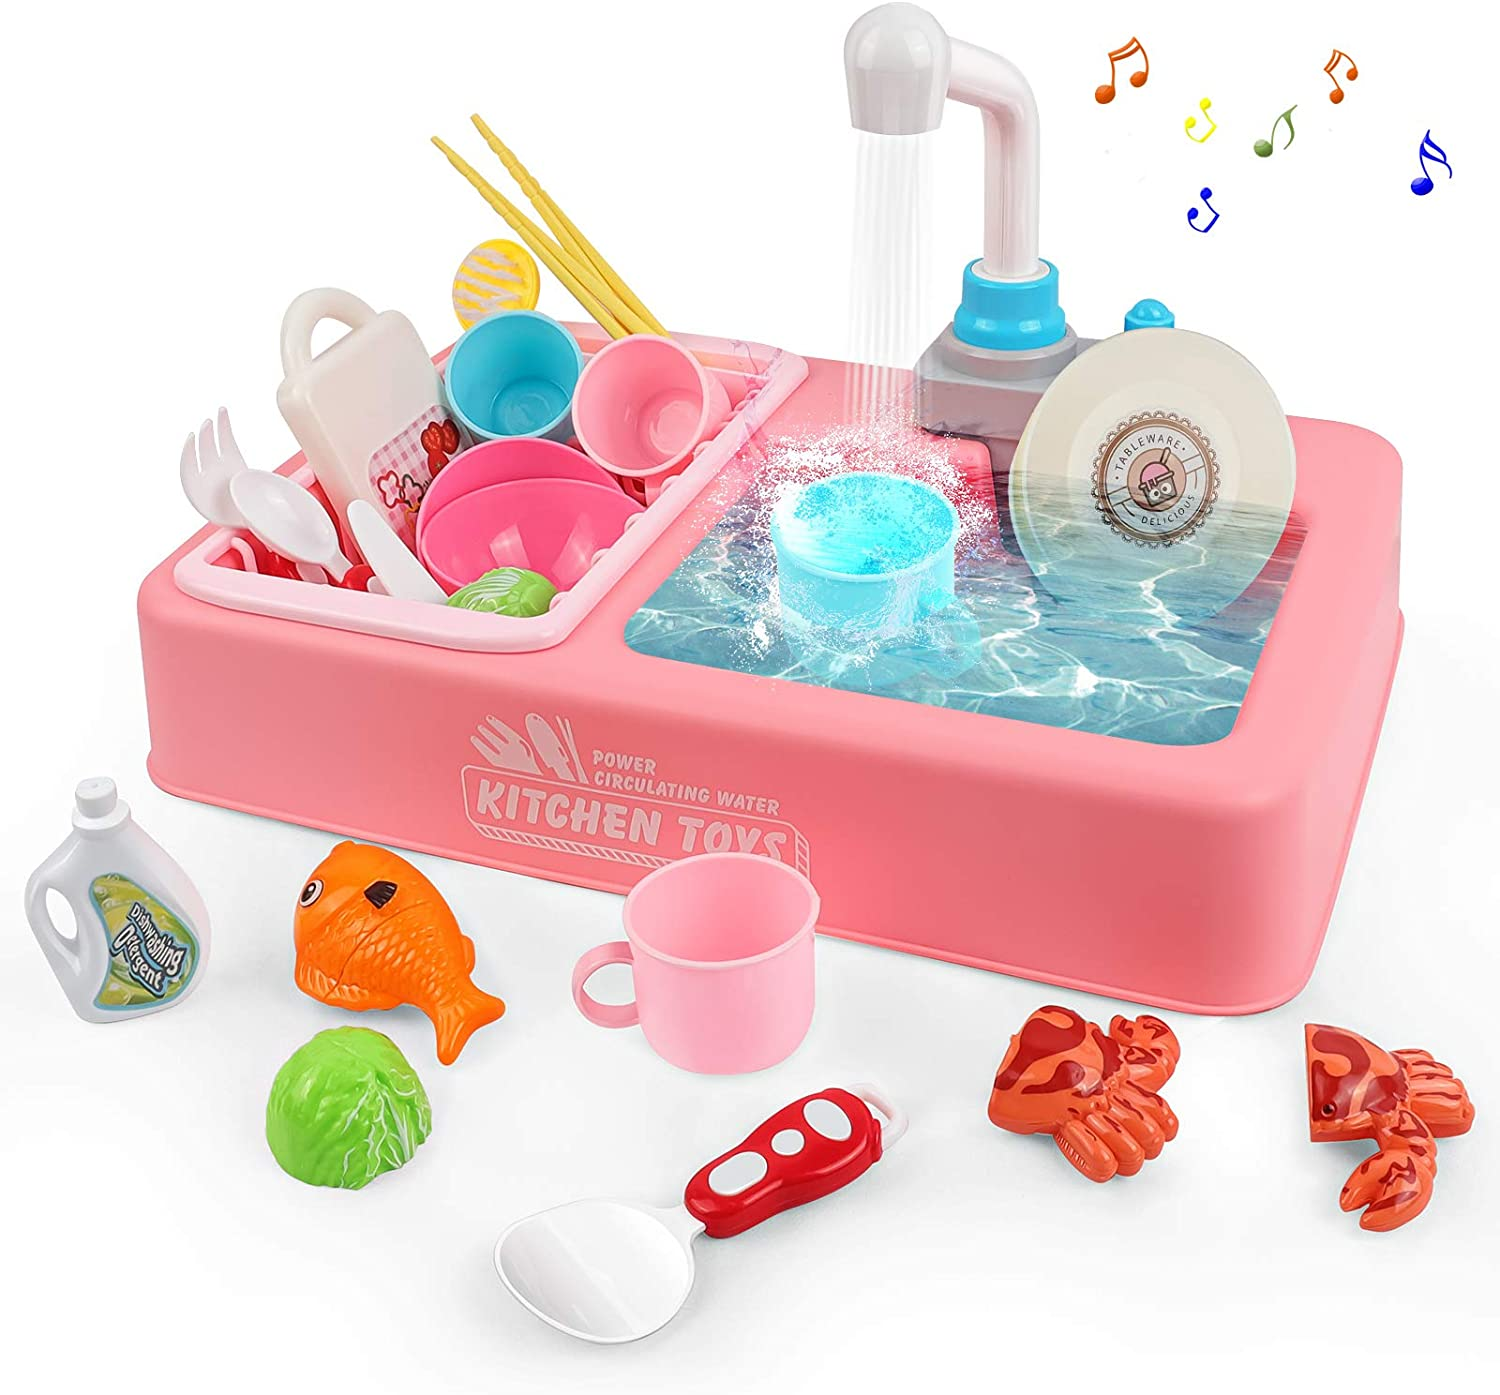 Rabing Pretend Play Kitchen Sink Toy Set with Running Water, Electric Dishwasher Playing Sink Set Toy for Girls, Role Play Sink Toy Kitchen Kids Toddler Gifts for Age 3 4 5 6 7 8, Kitchen Playset Toy